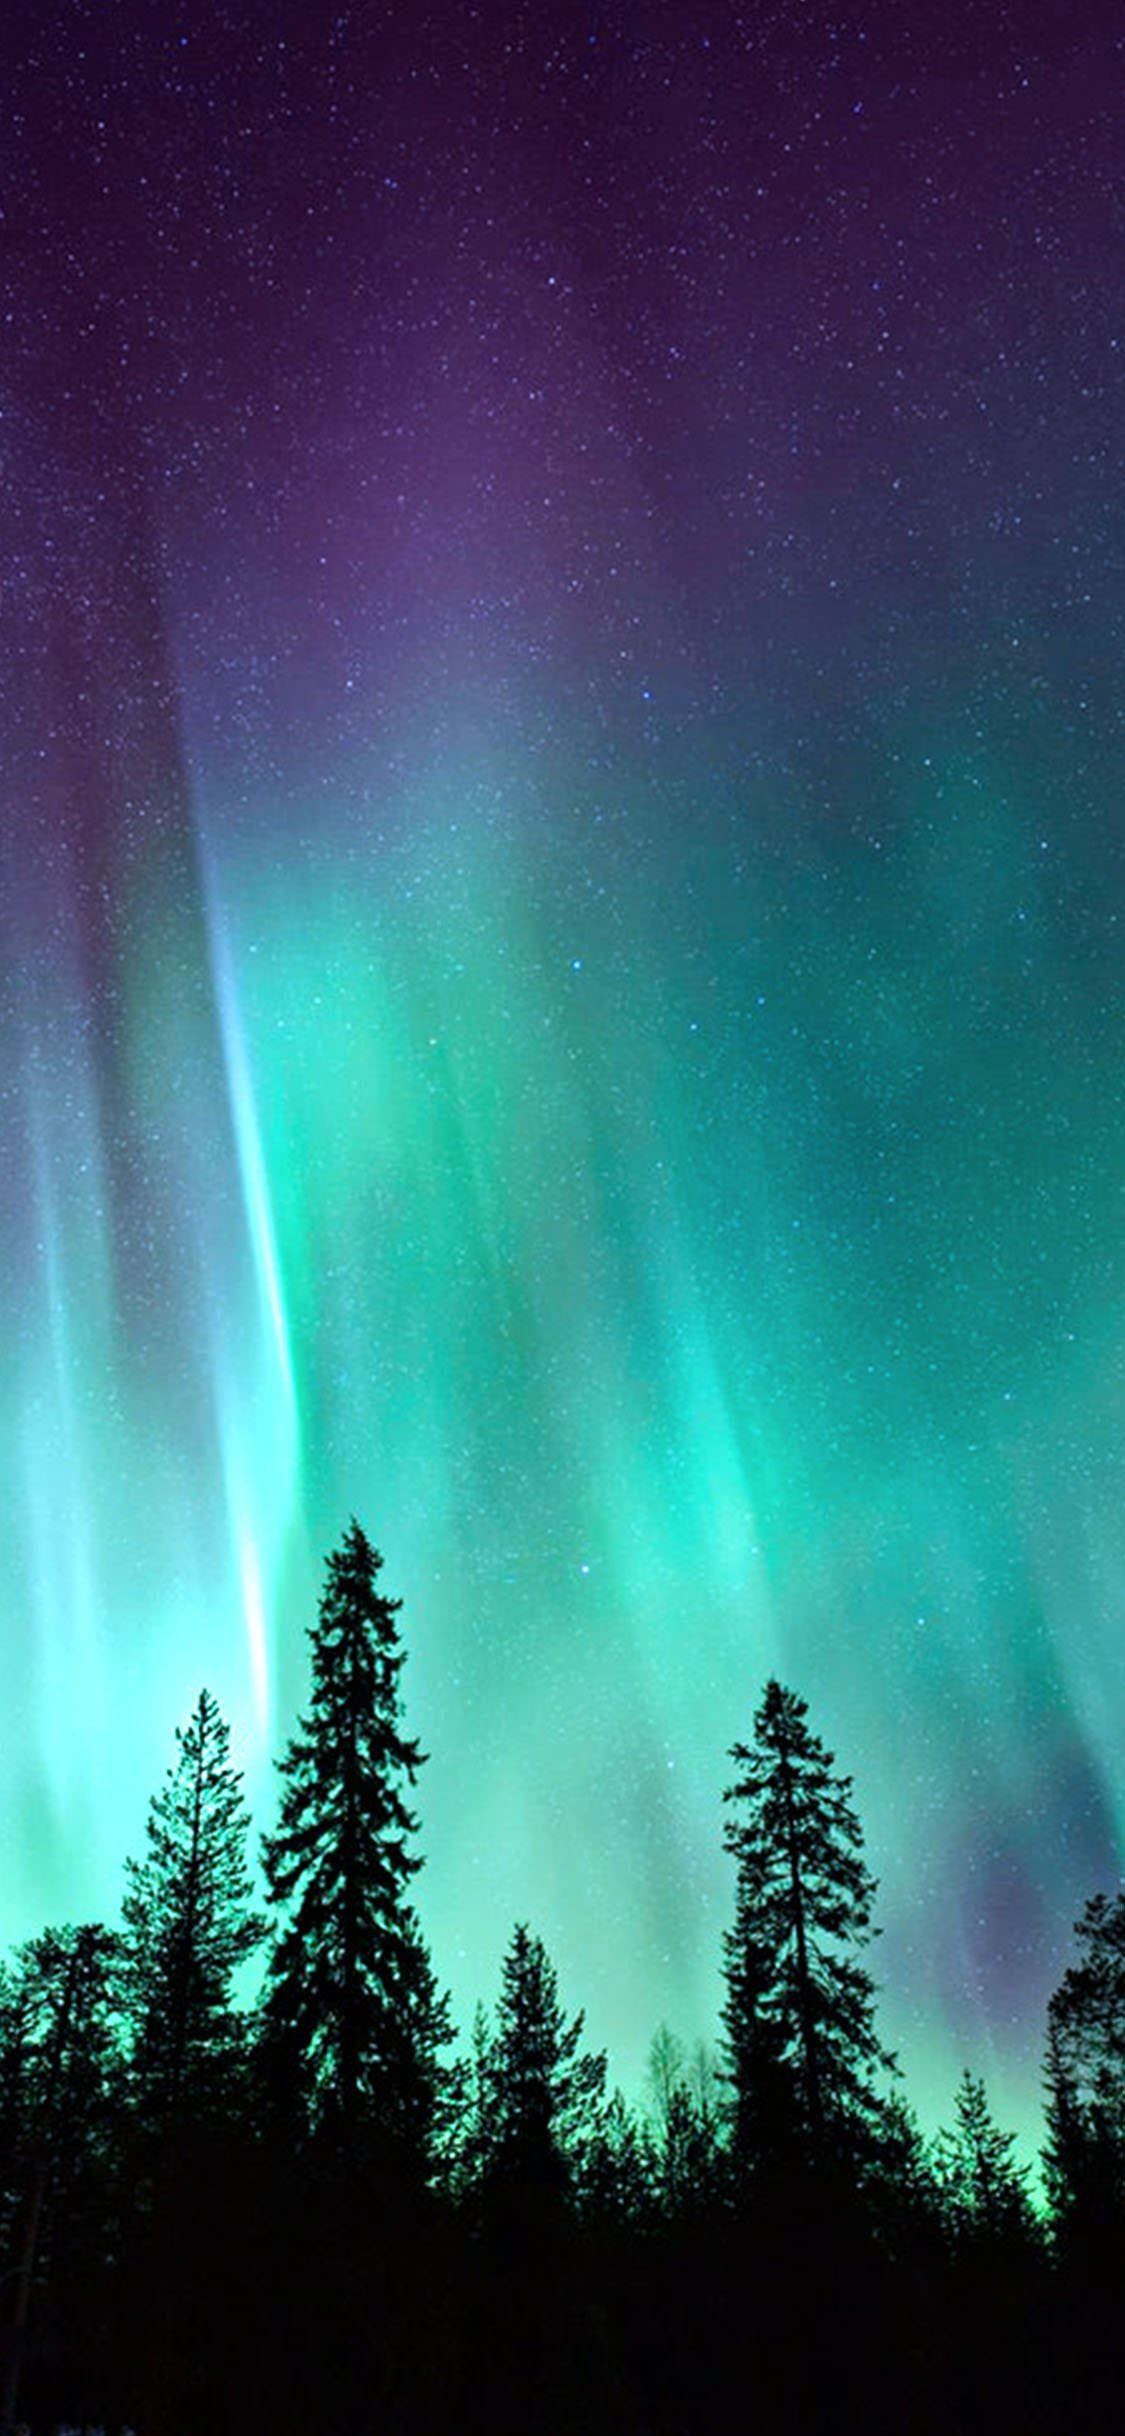 30+ Cool iPhone Wallpapers & Backgrounds - Templatefor